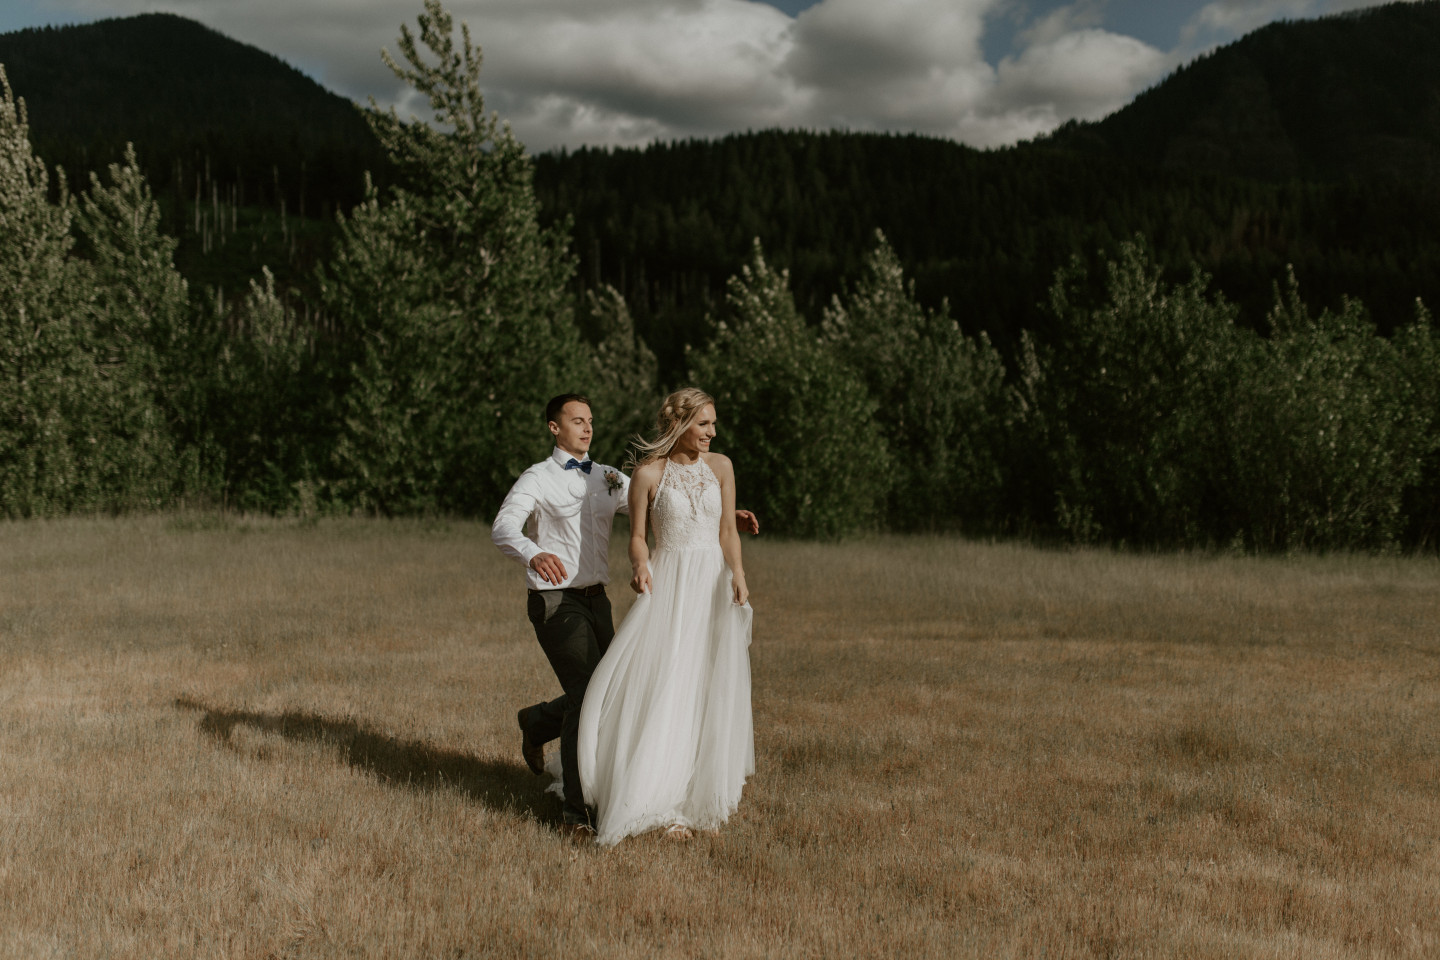 Trevor goes to suprirse Harper at Cascade Locks, Oregon during their Adventure. Elopement photography in Portland Oregon by Sienna Plus Josh.